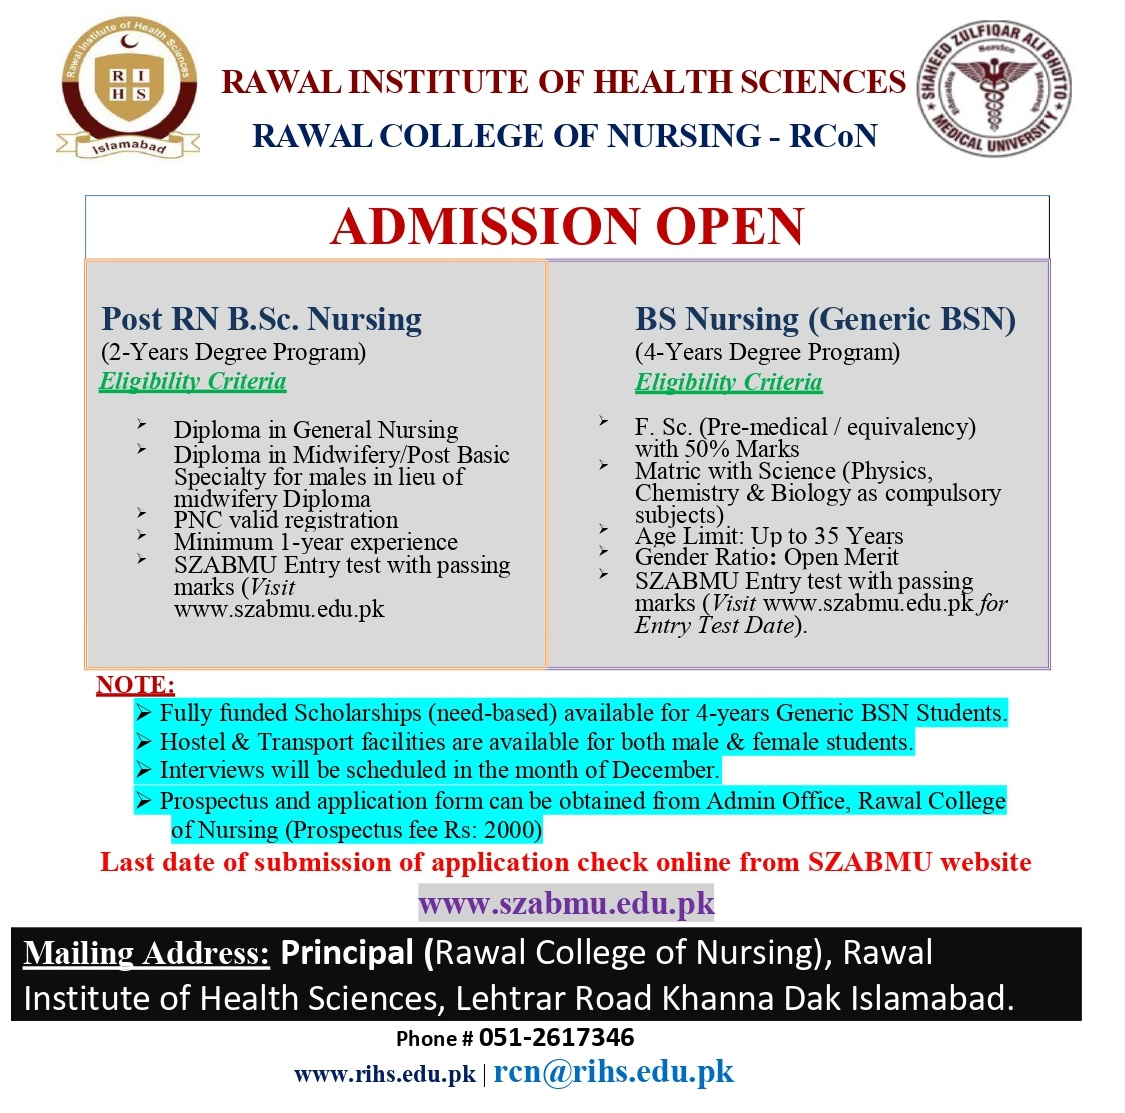 Admission Open Nursing program at Rawal College of Nursing RCN Rawal Institute of Health Sciences RIHS